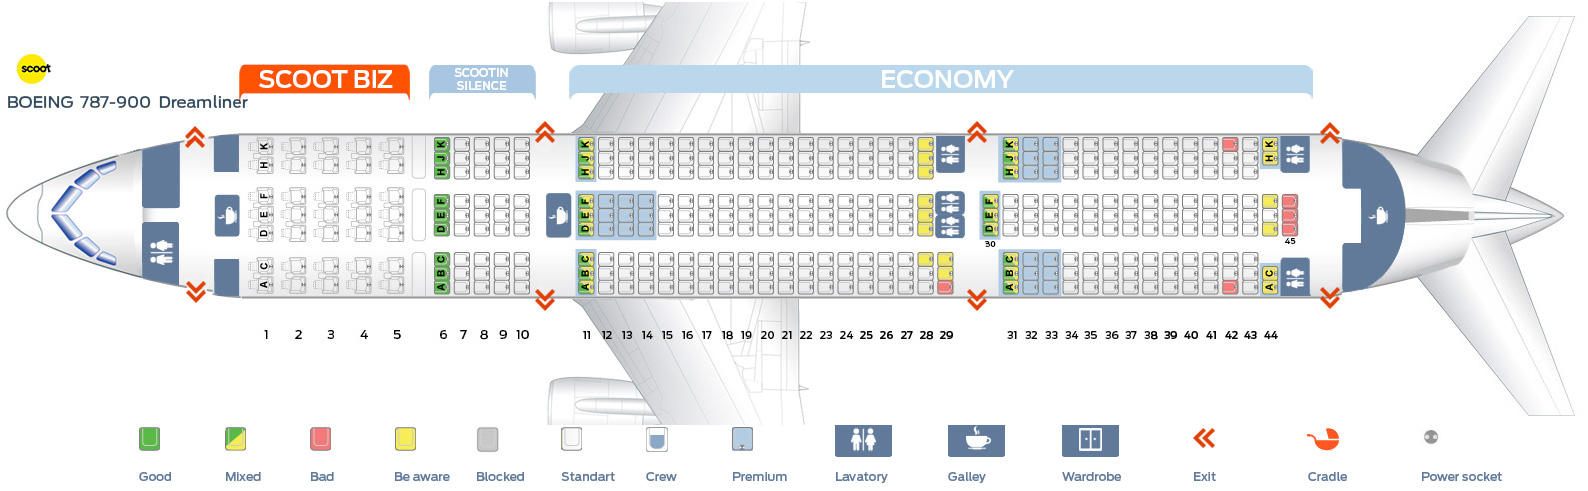 Seat map Boeing 787-900 Scoot Airlines